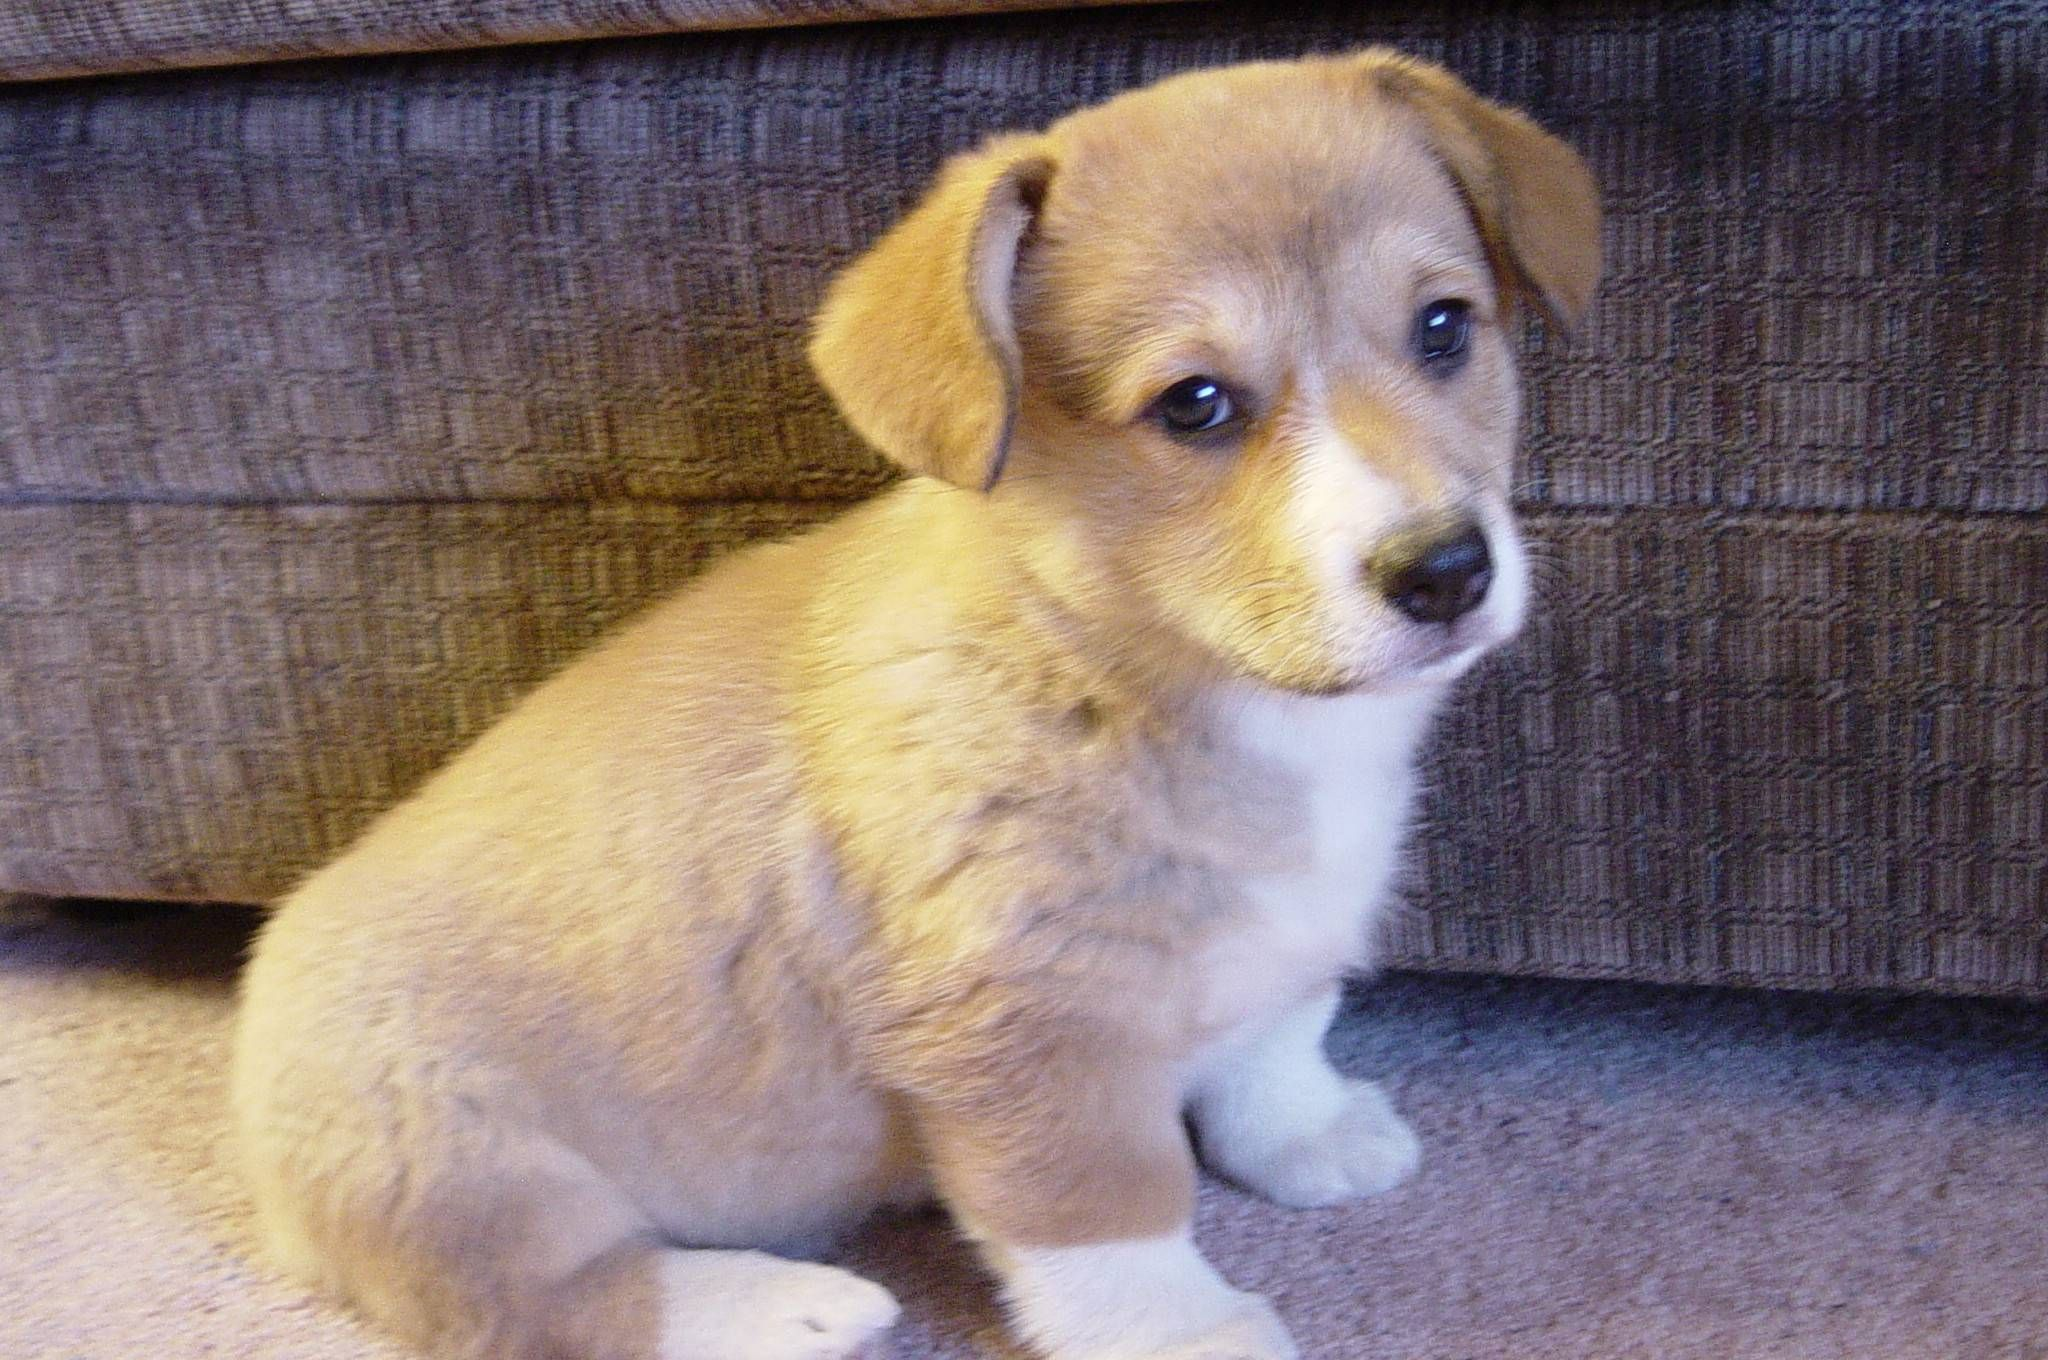 Wanted to share a picture of the Corgi puppy coming home to our house on Sunday